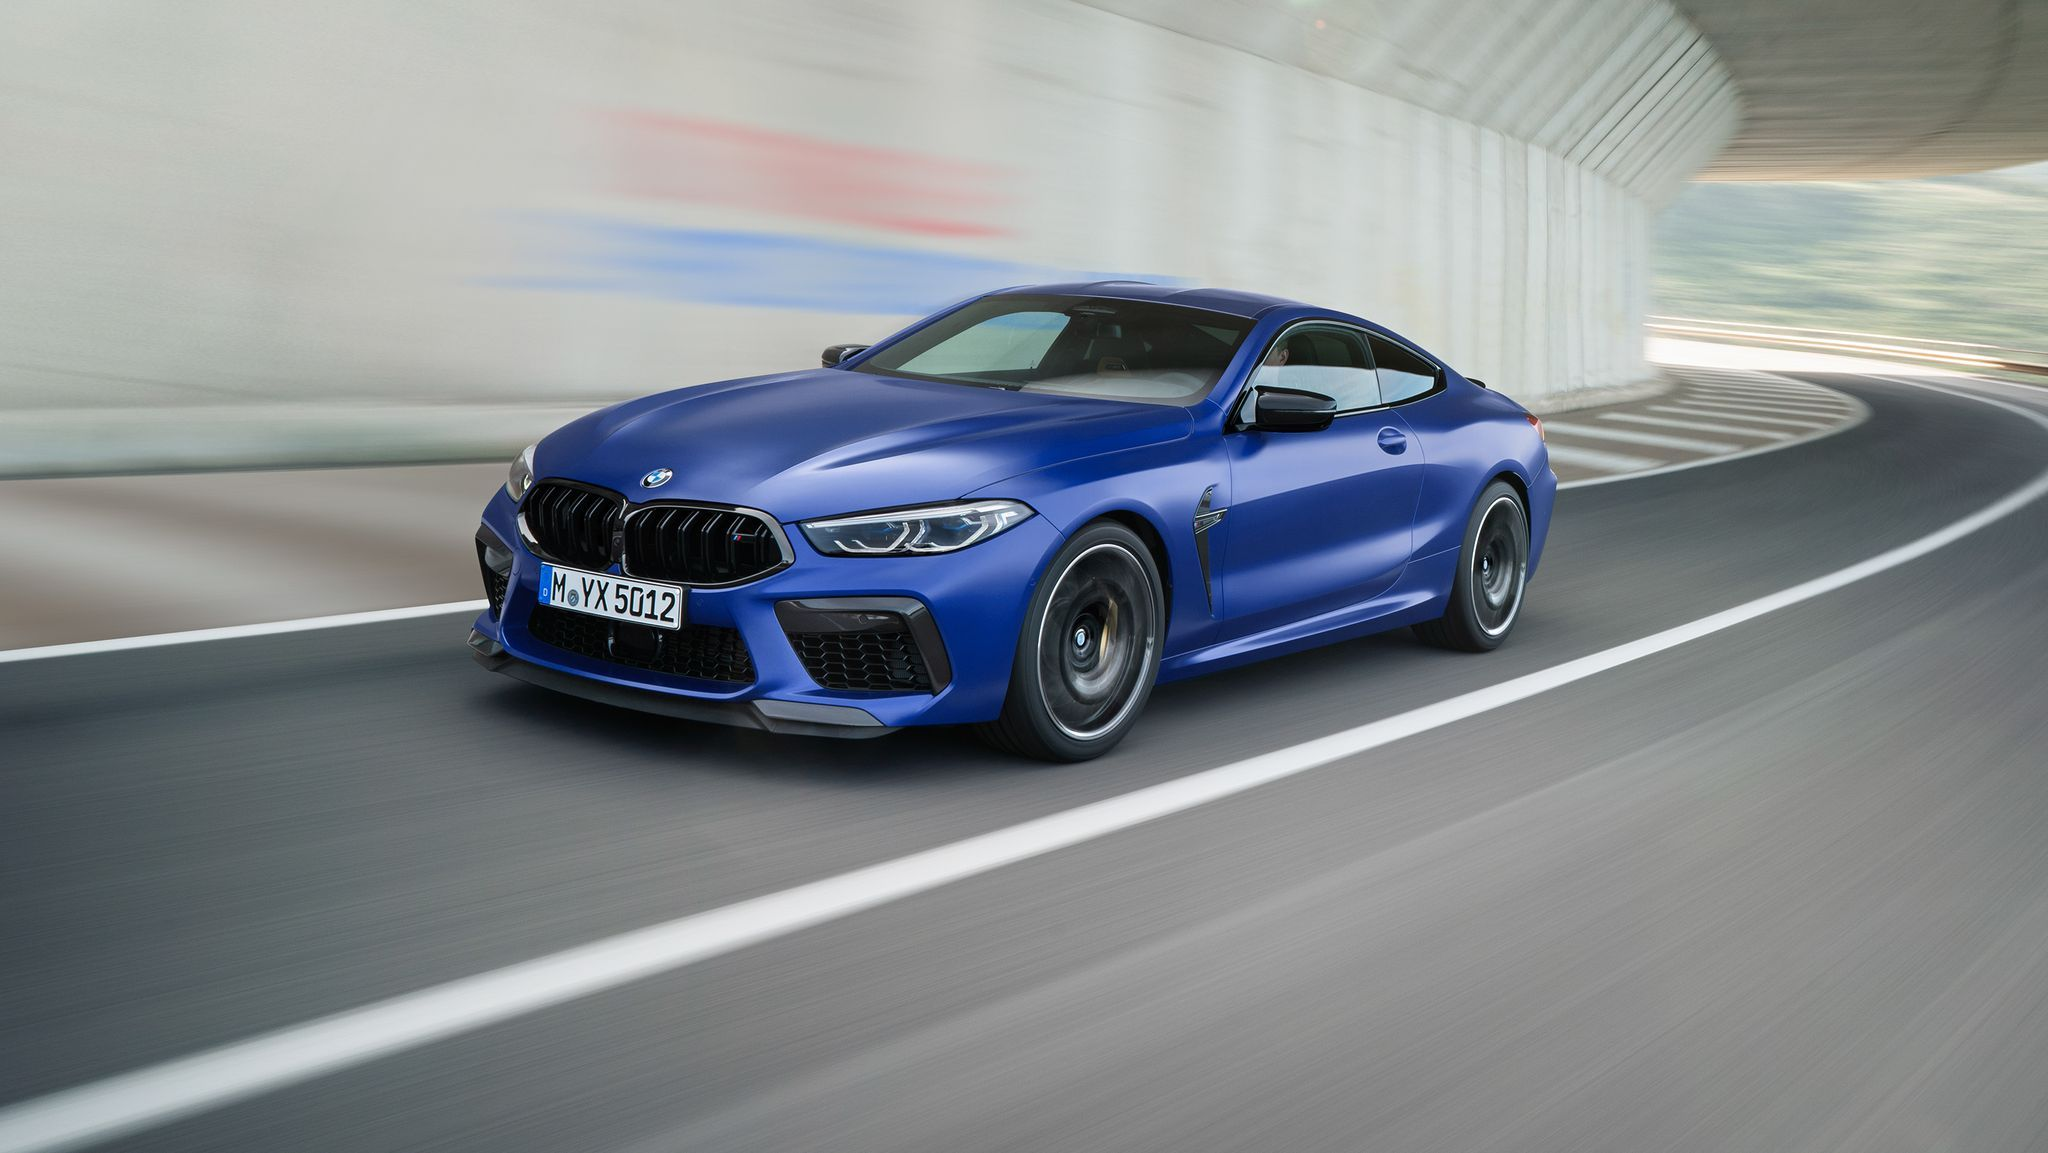 2020 Bmw M8 Review Pricing And Specs In 2020 Bmw Porsche Sports Car